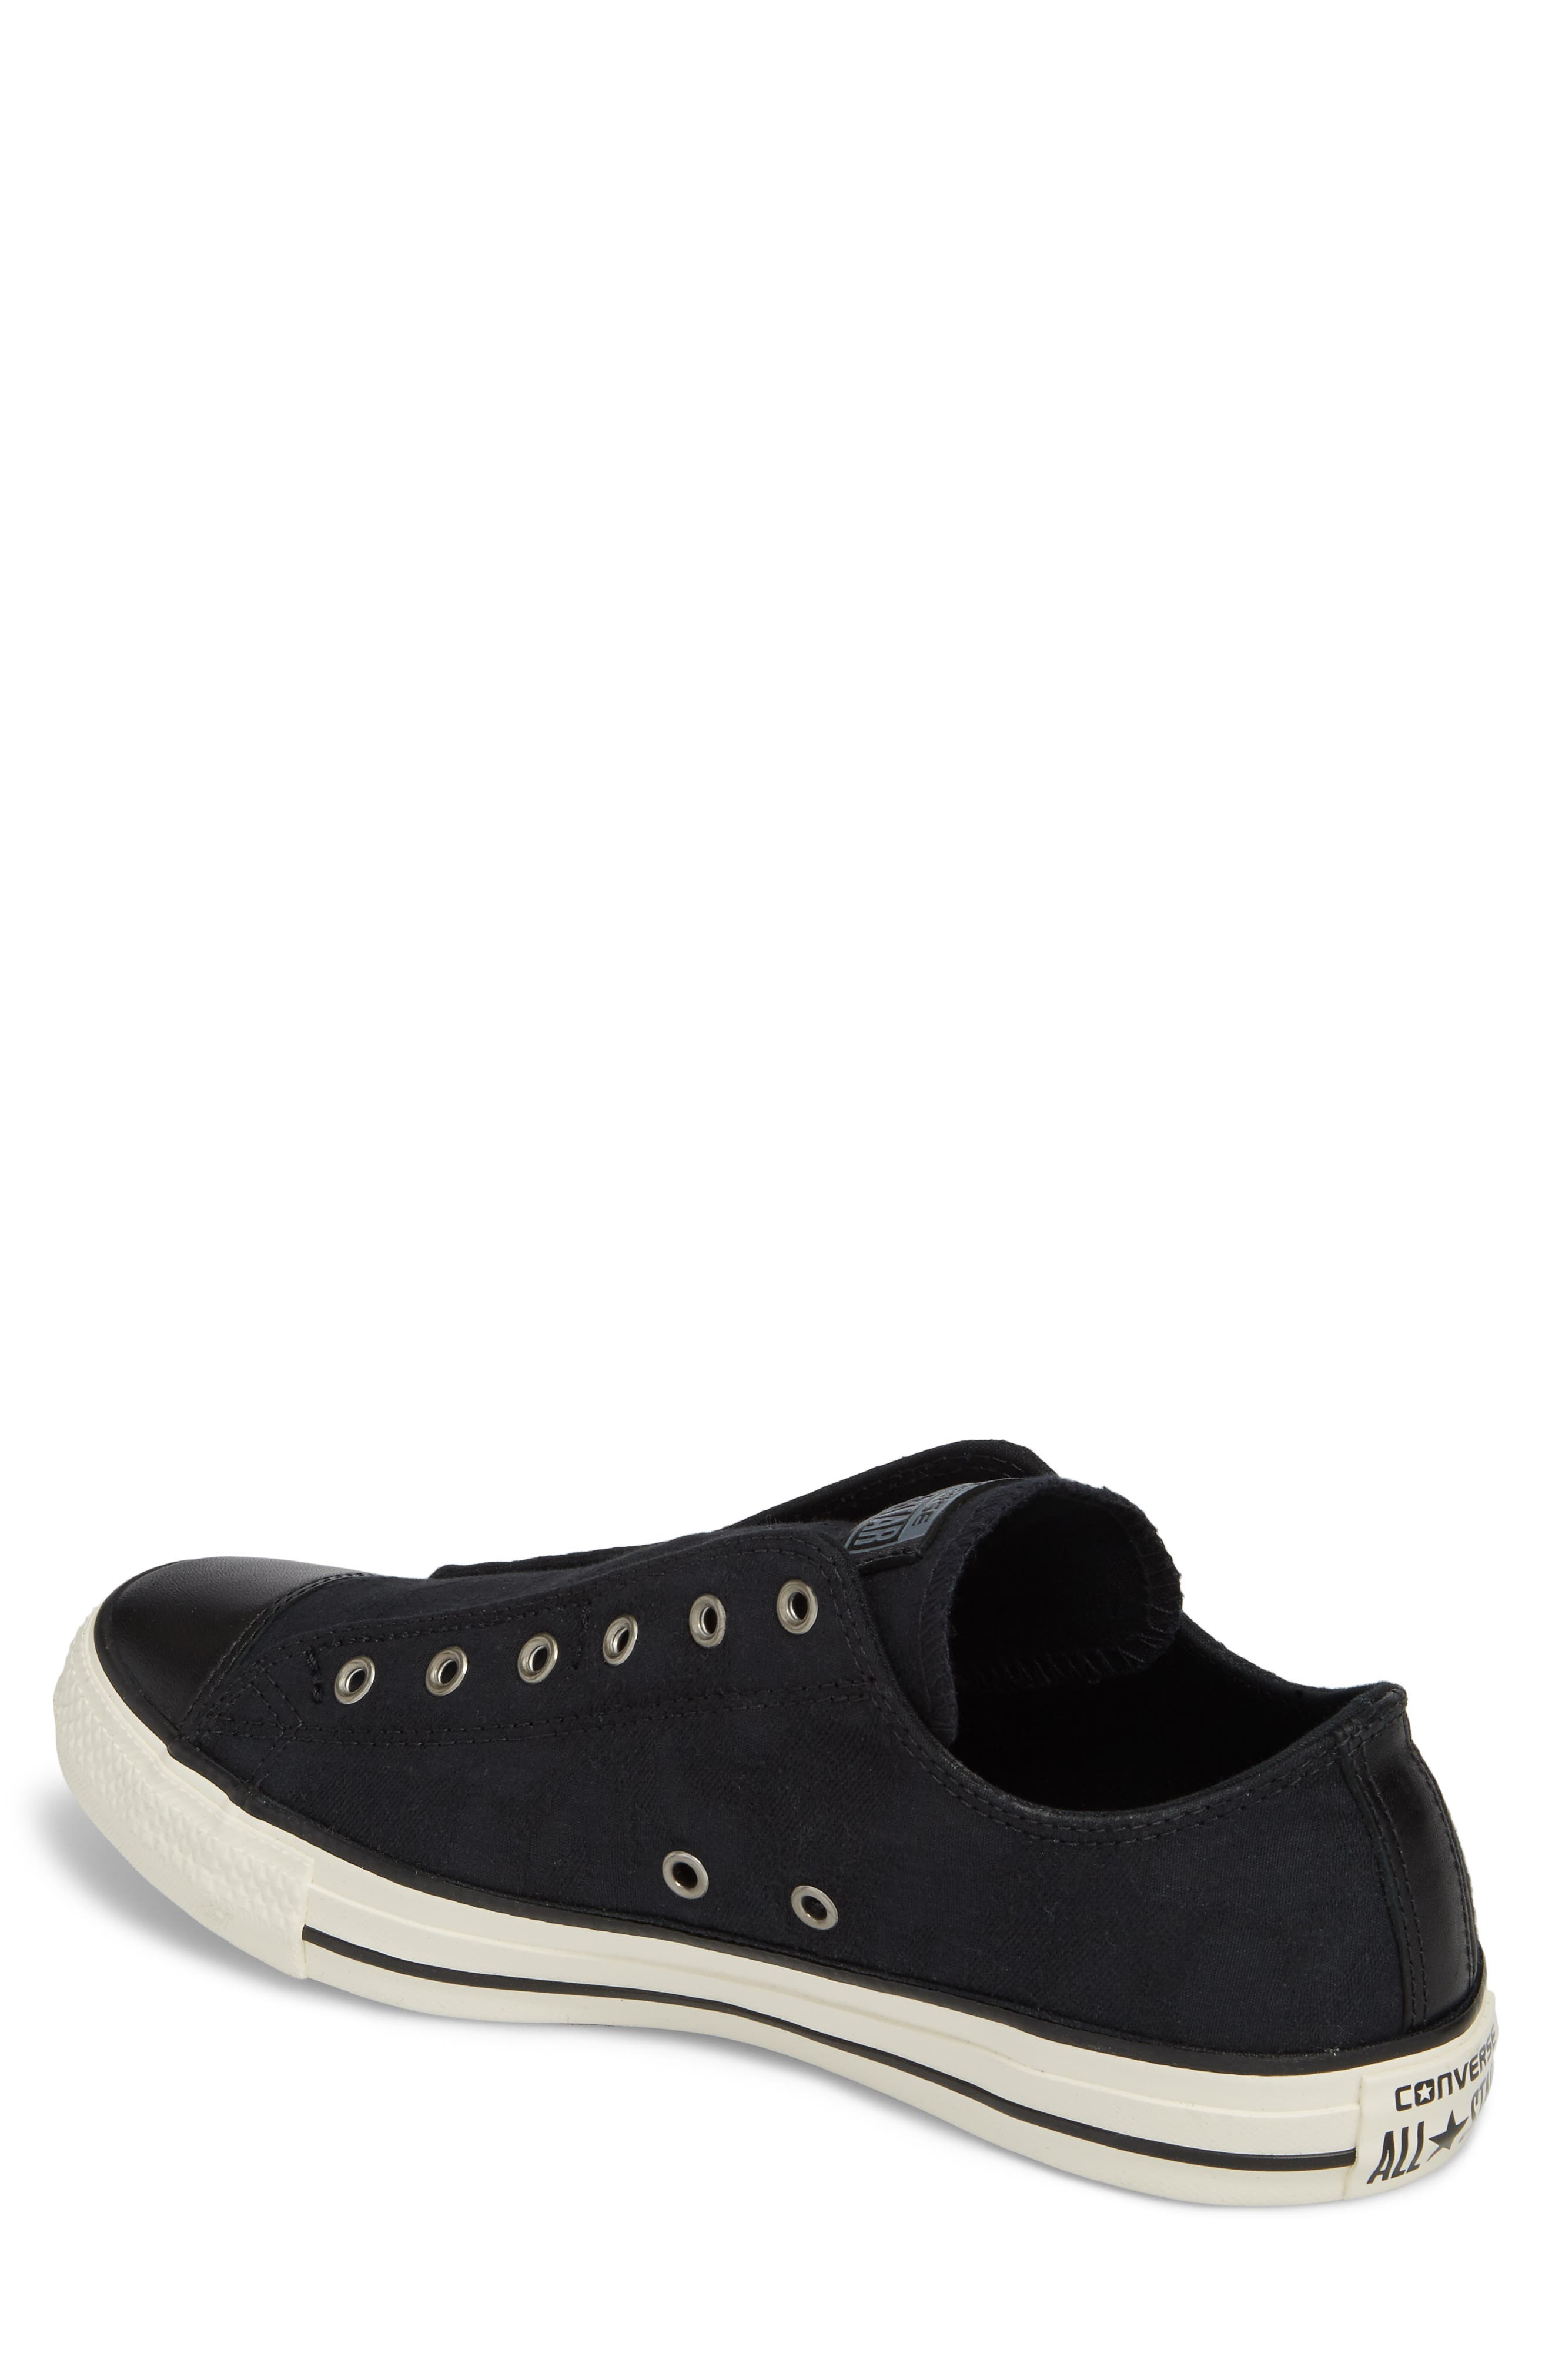 Chuck Taylor<sup>®</sup> All Star<sup>®</sup> Laceless Low Top Sneaker,                             Alternate thumbnail 2, color,                             Black